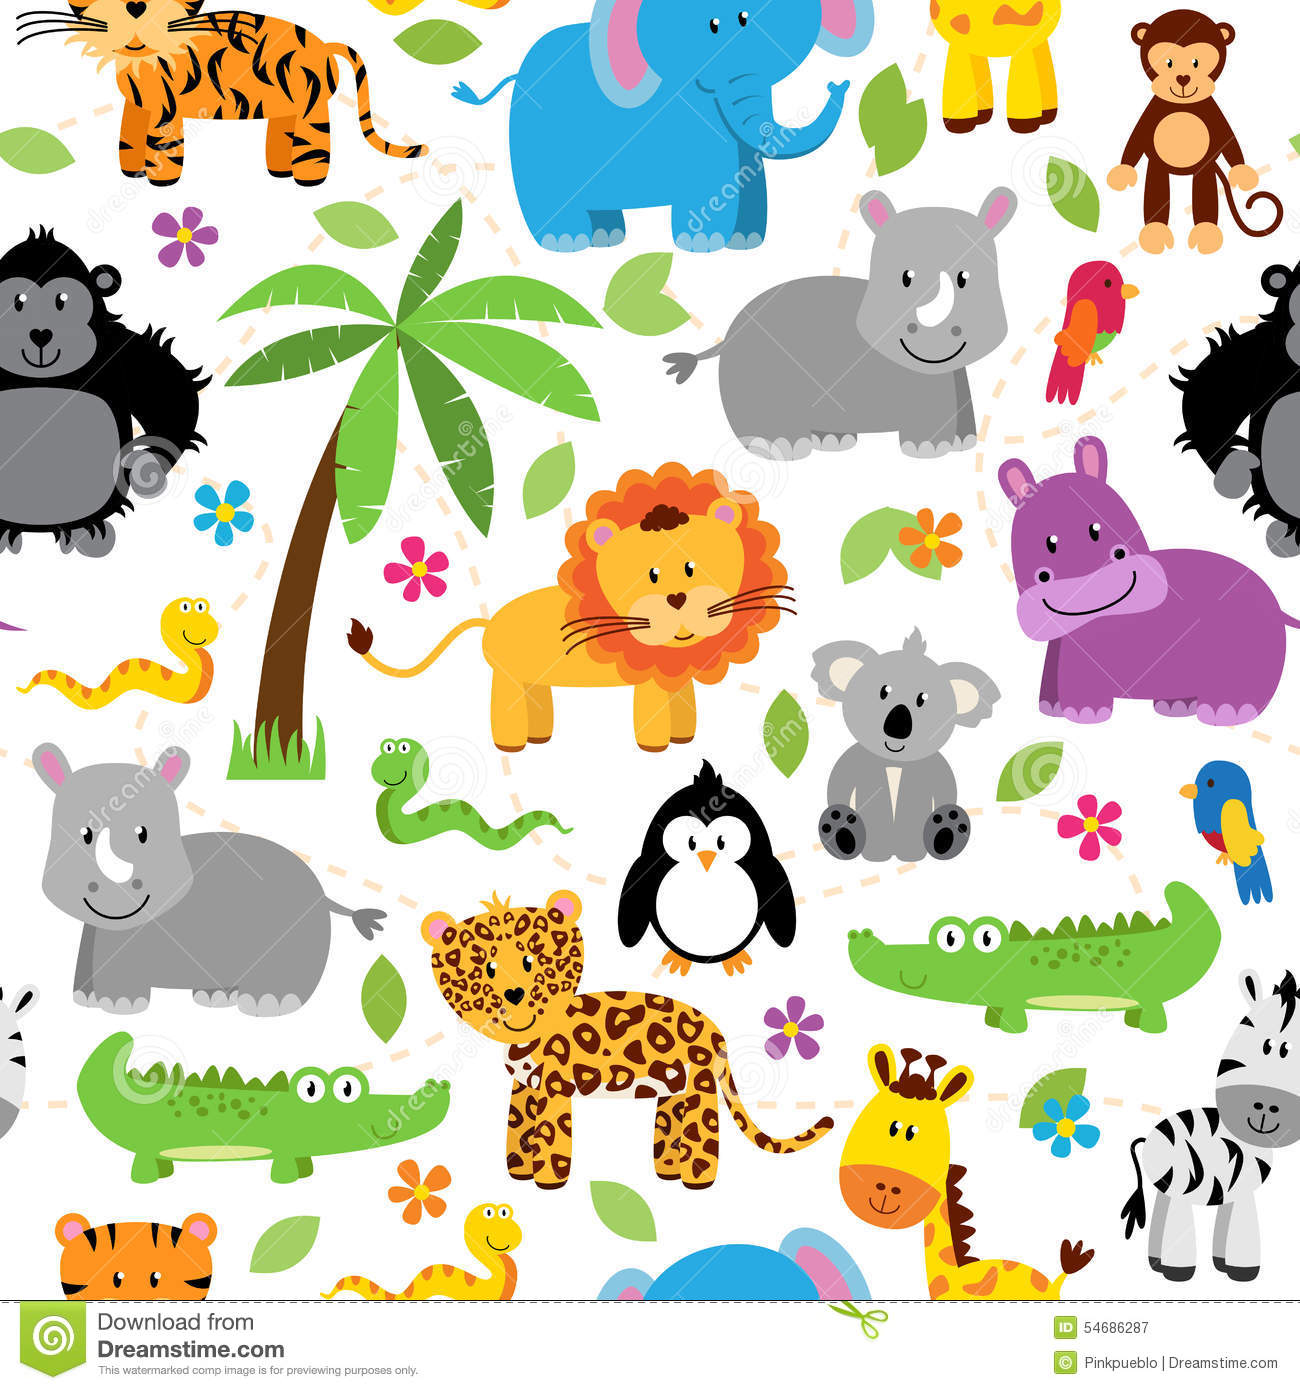 Seamless Tileable Jungle Animal Themed Background